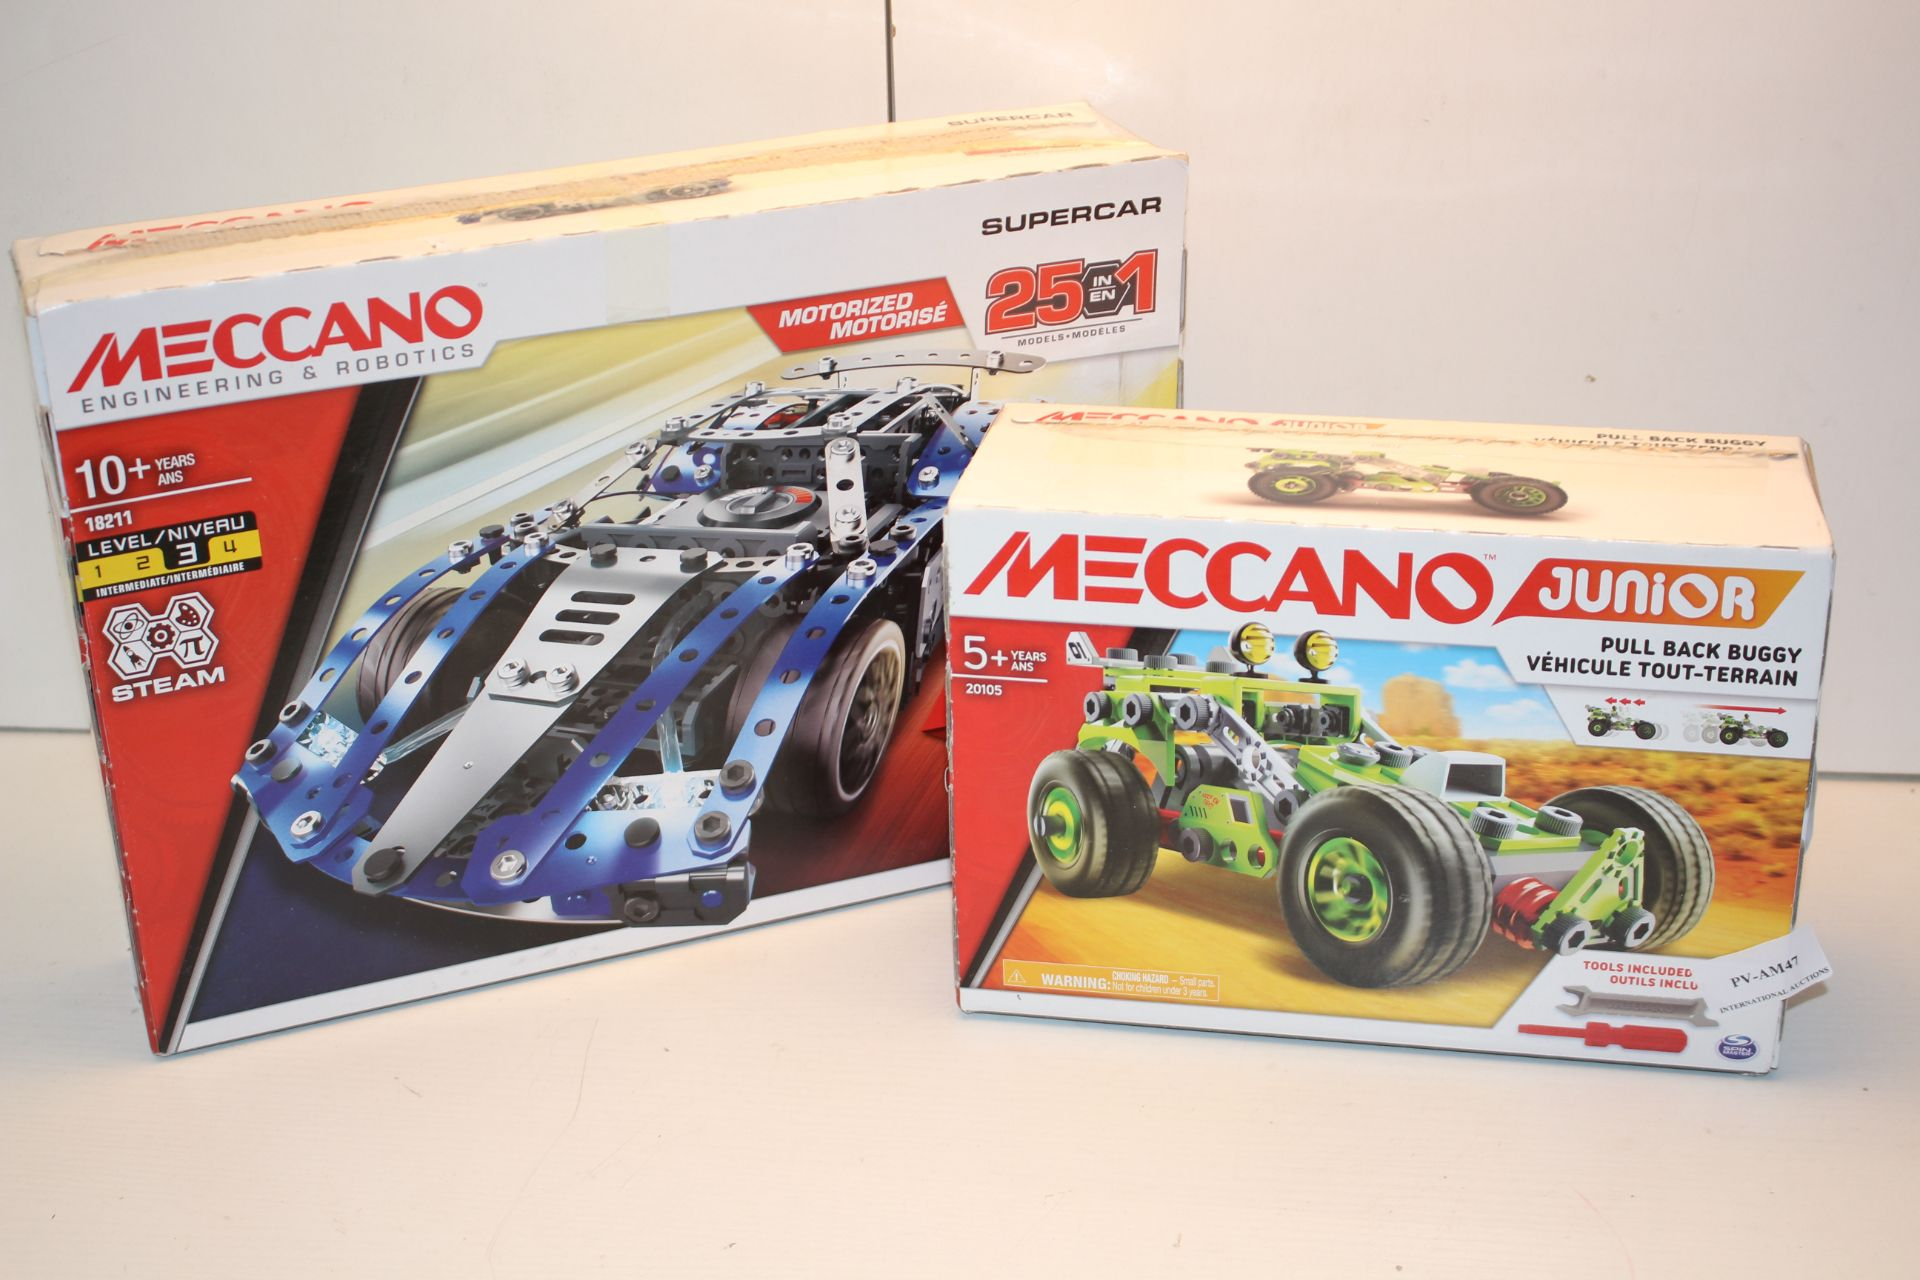 2X BOXED MECCANO SETS TO INCLUDE 20105 & 18211 COMBINED RRP £65.00Condition ReportAppraisal